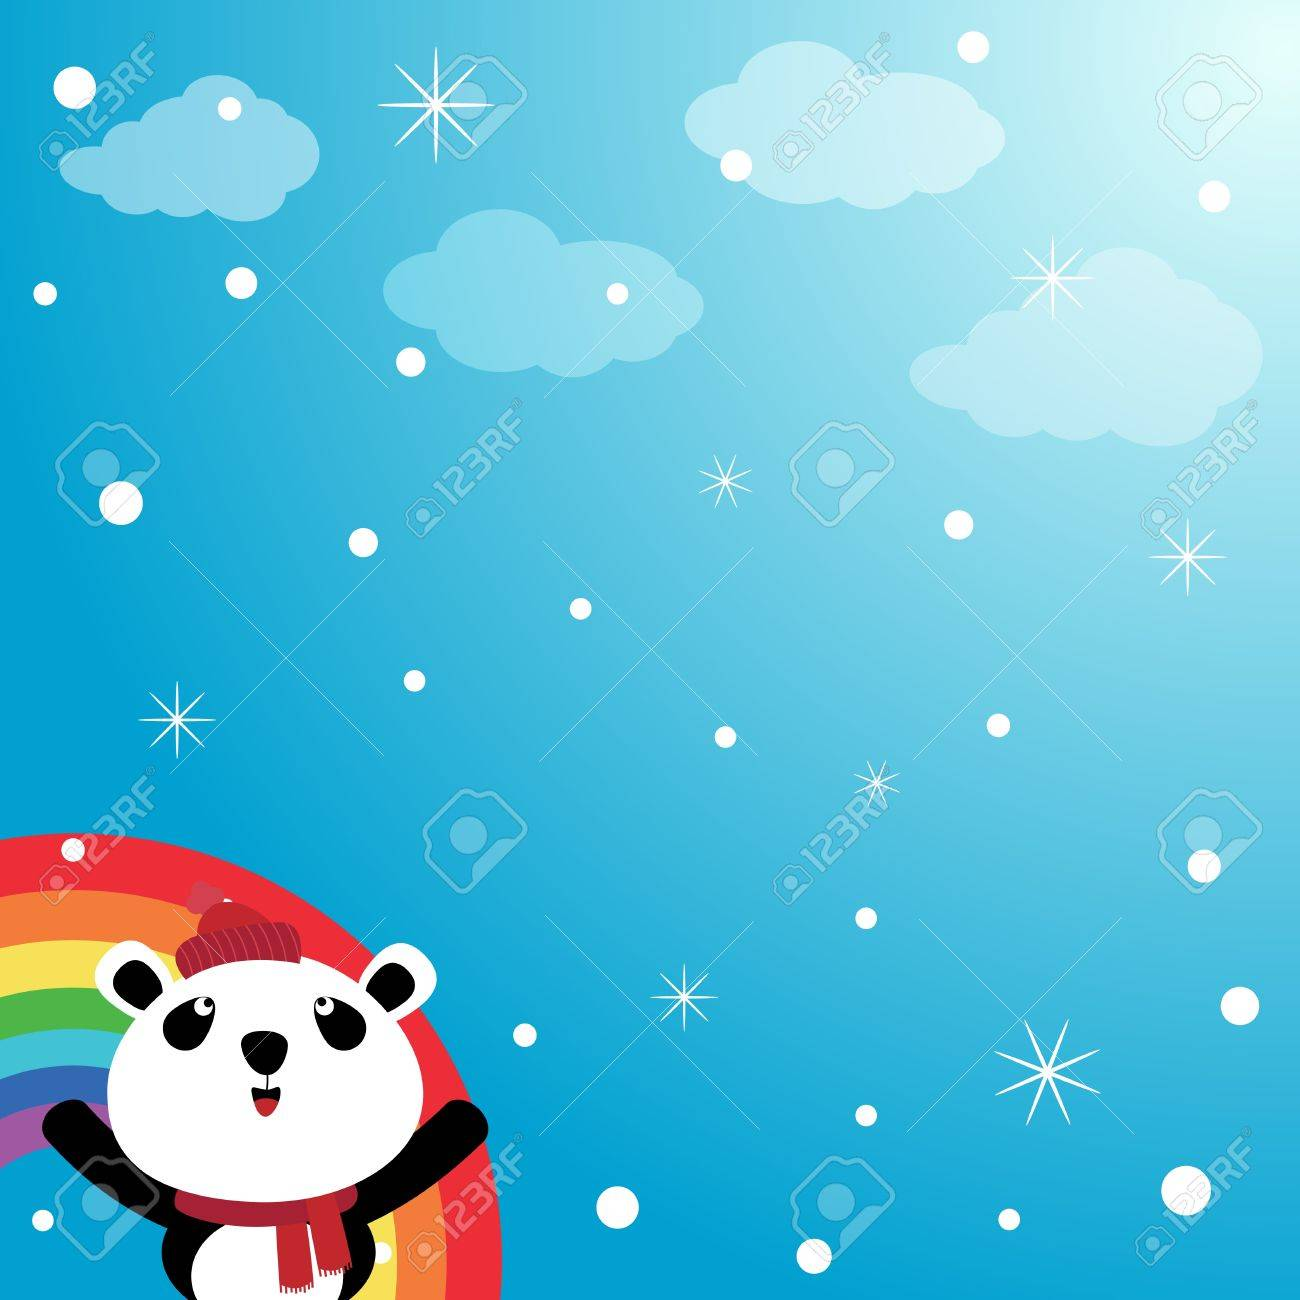 Panda and rainbow in the sky Stock Vector - 15311074